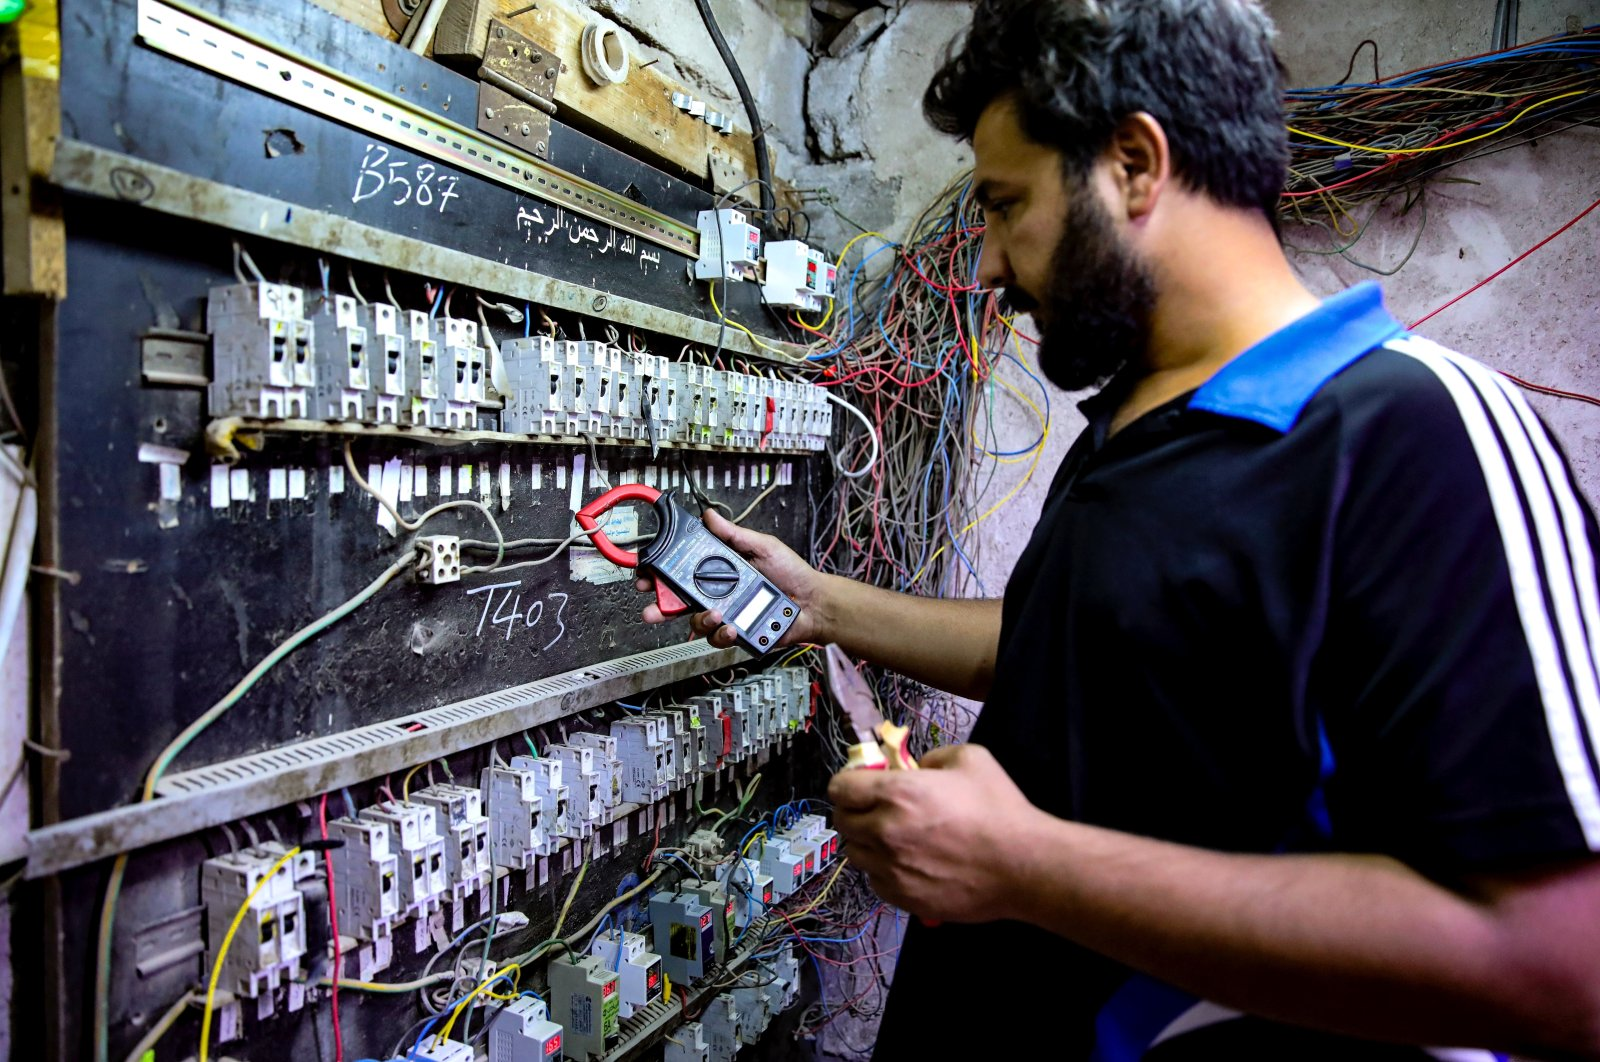 Kadim Aboud, a worker in a private electricity generating company, turns the switches to transfer electricity to private homes in Basra, Iraq, June. 29, 2021. (AP Photo)